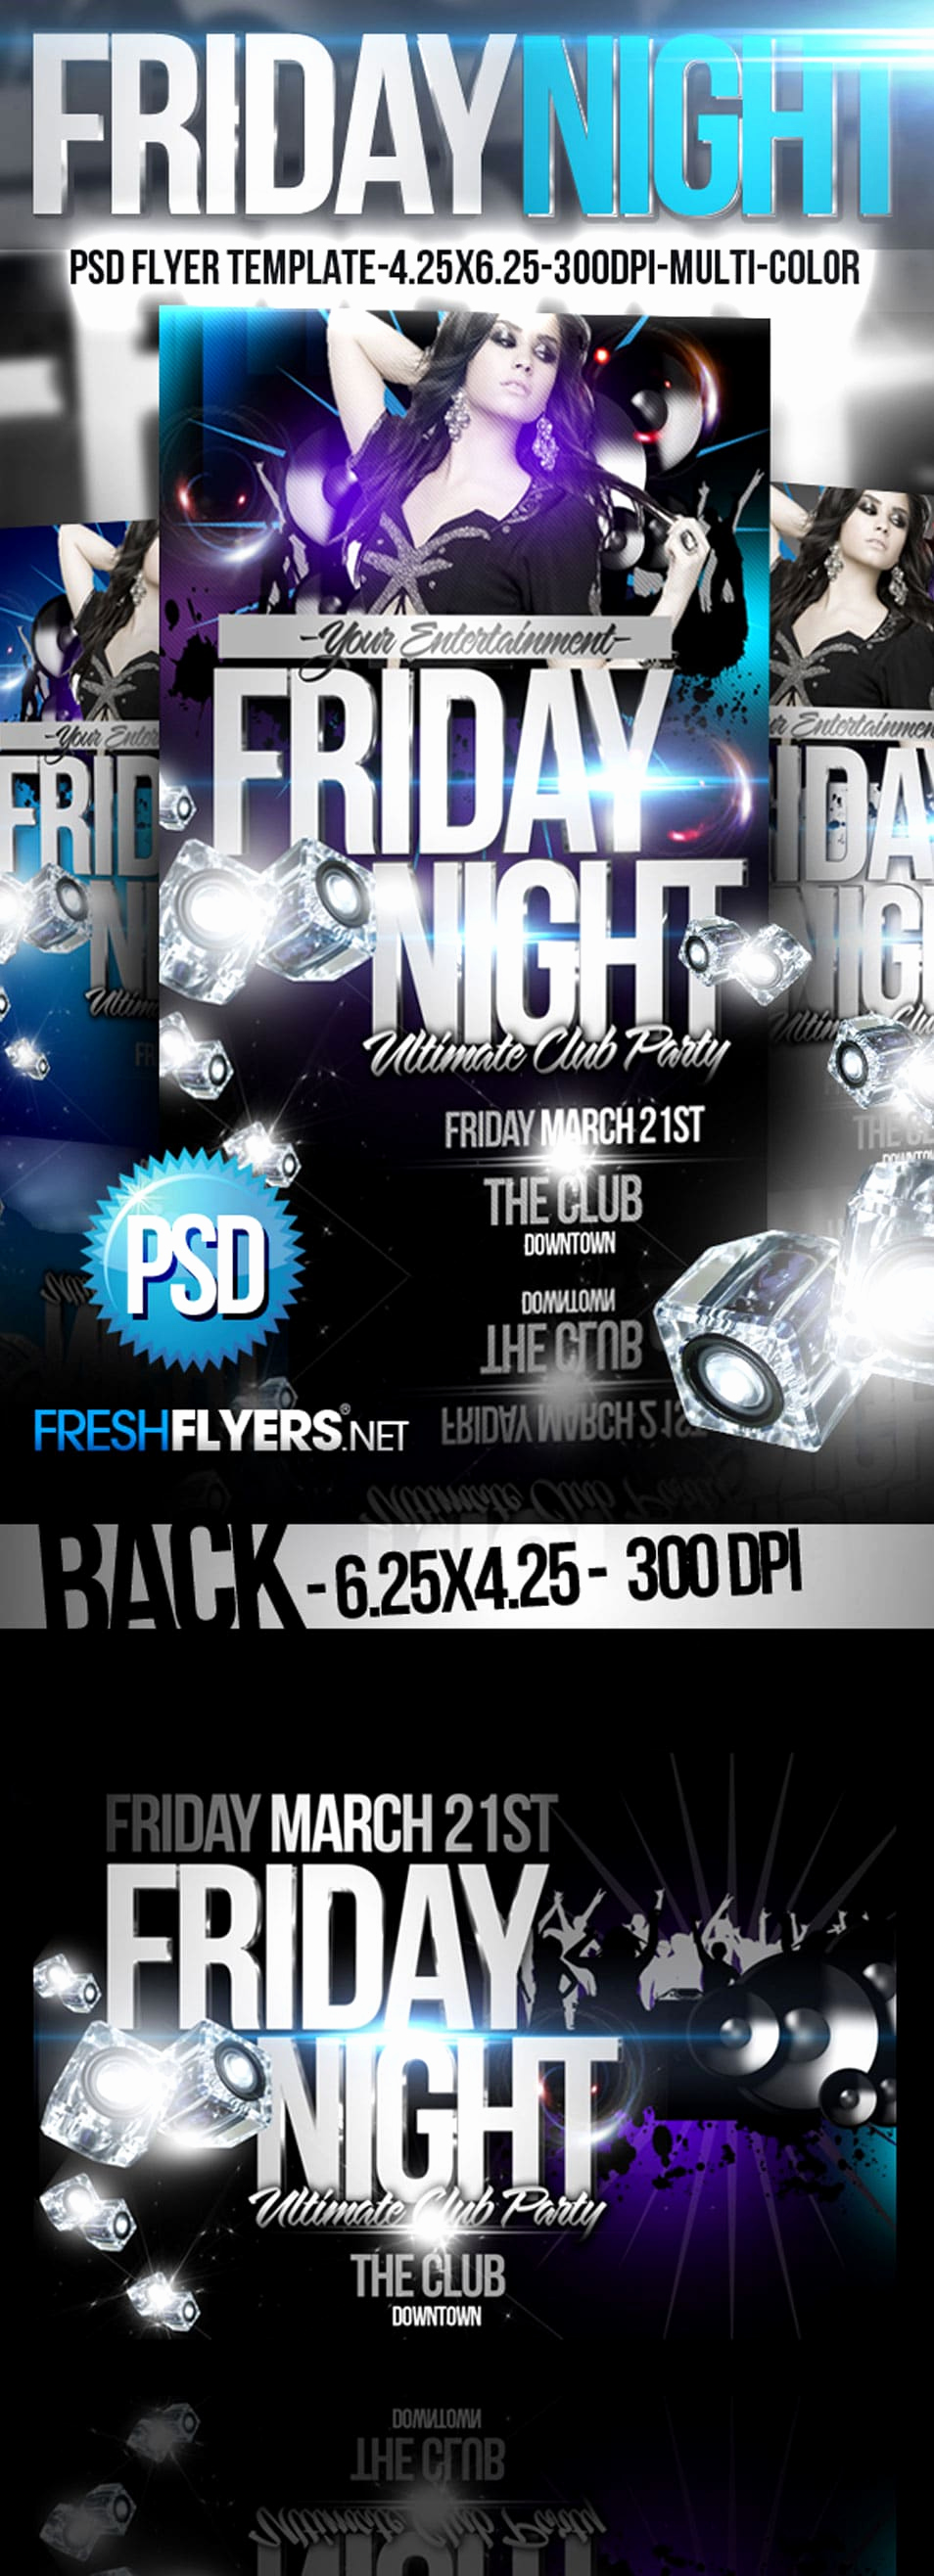 Night Club Flyer Templates Unique 60 Best Free Flyer Templates Psd